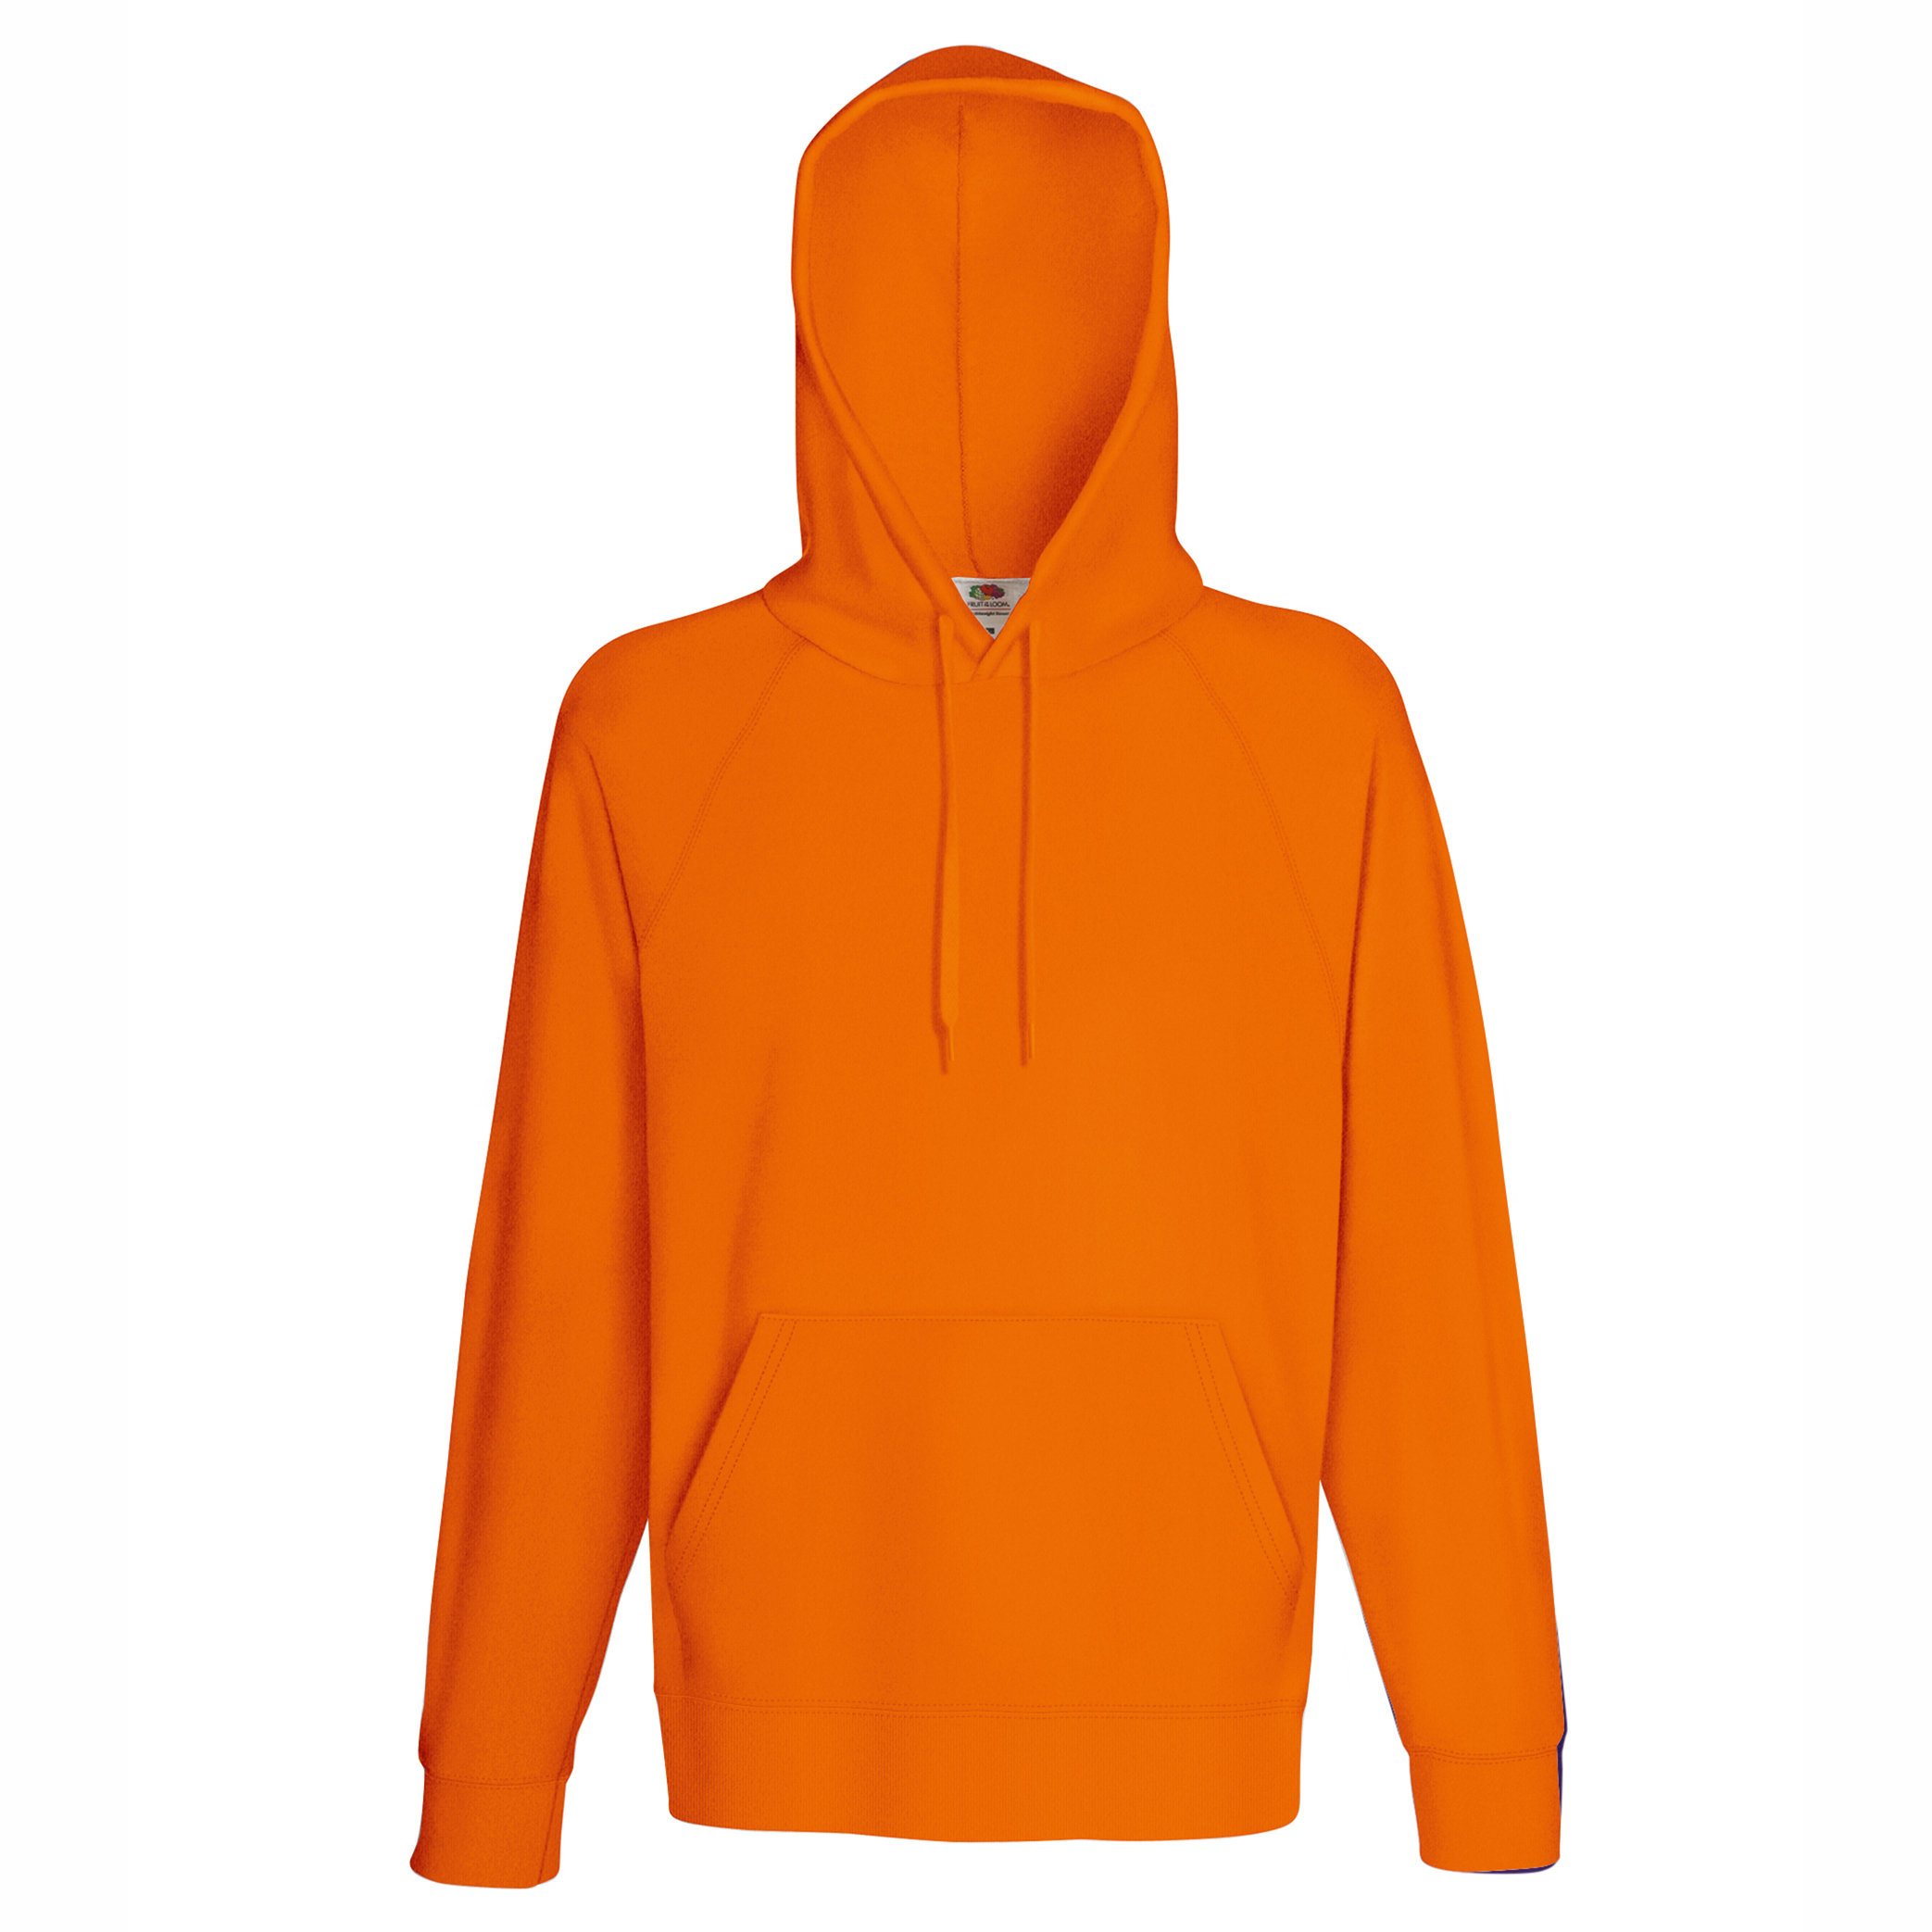 FRUIT-OF-THE-LOOM-HOMME-LEGER-Sweat-Capuche-Capuche-62140